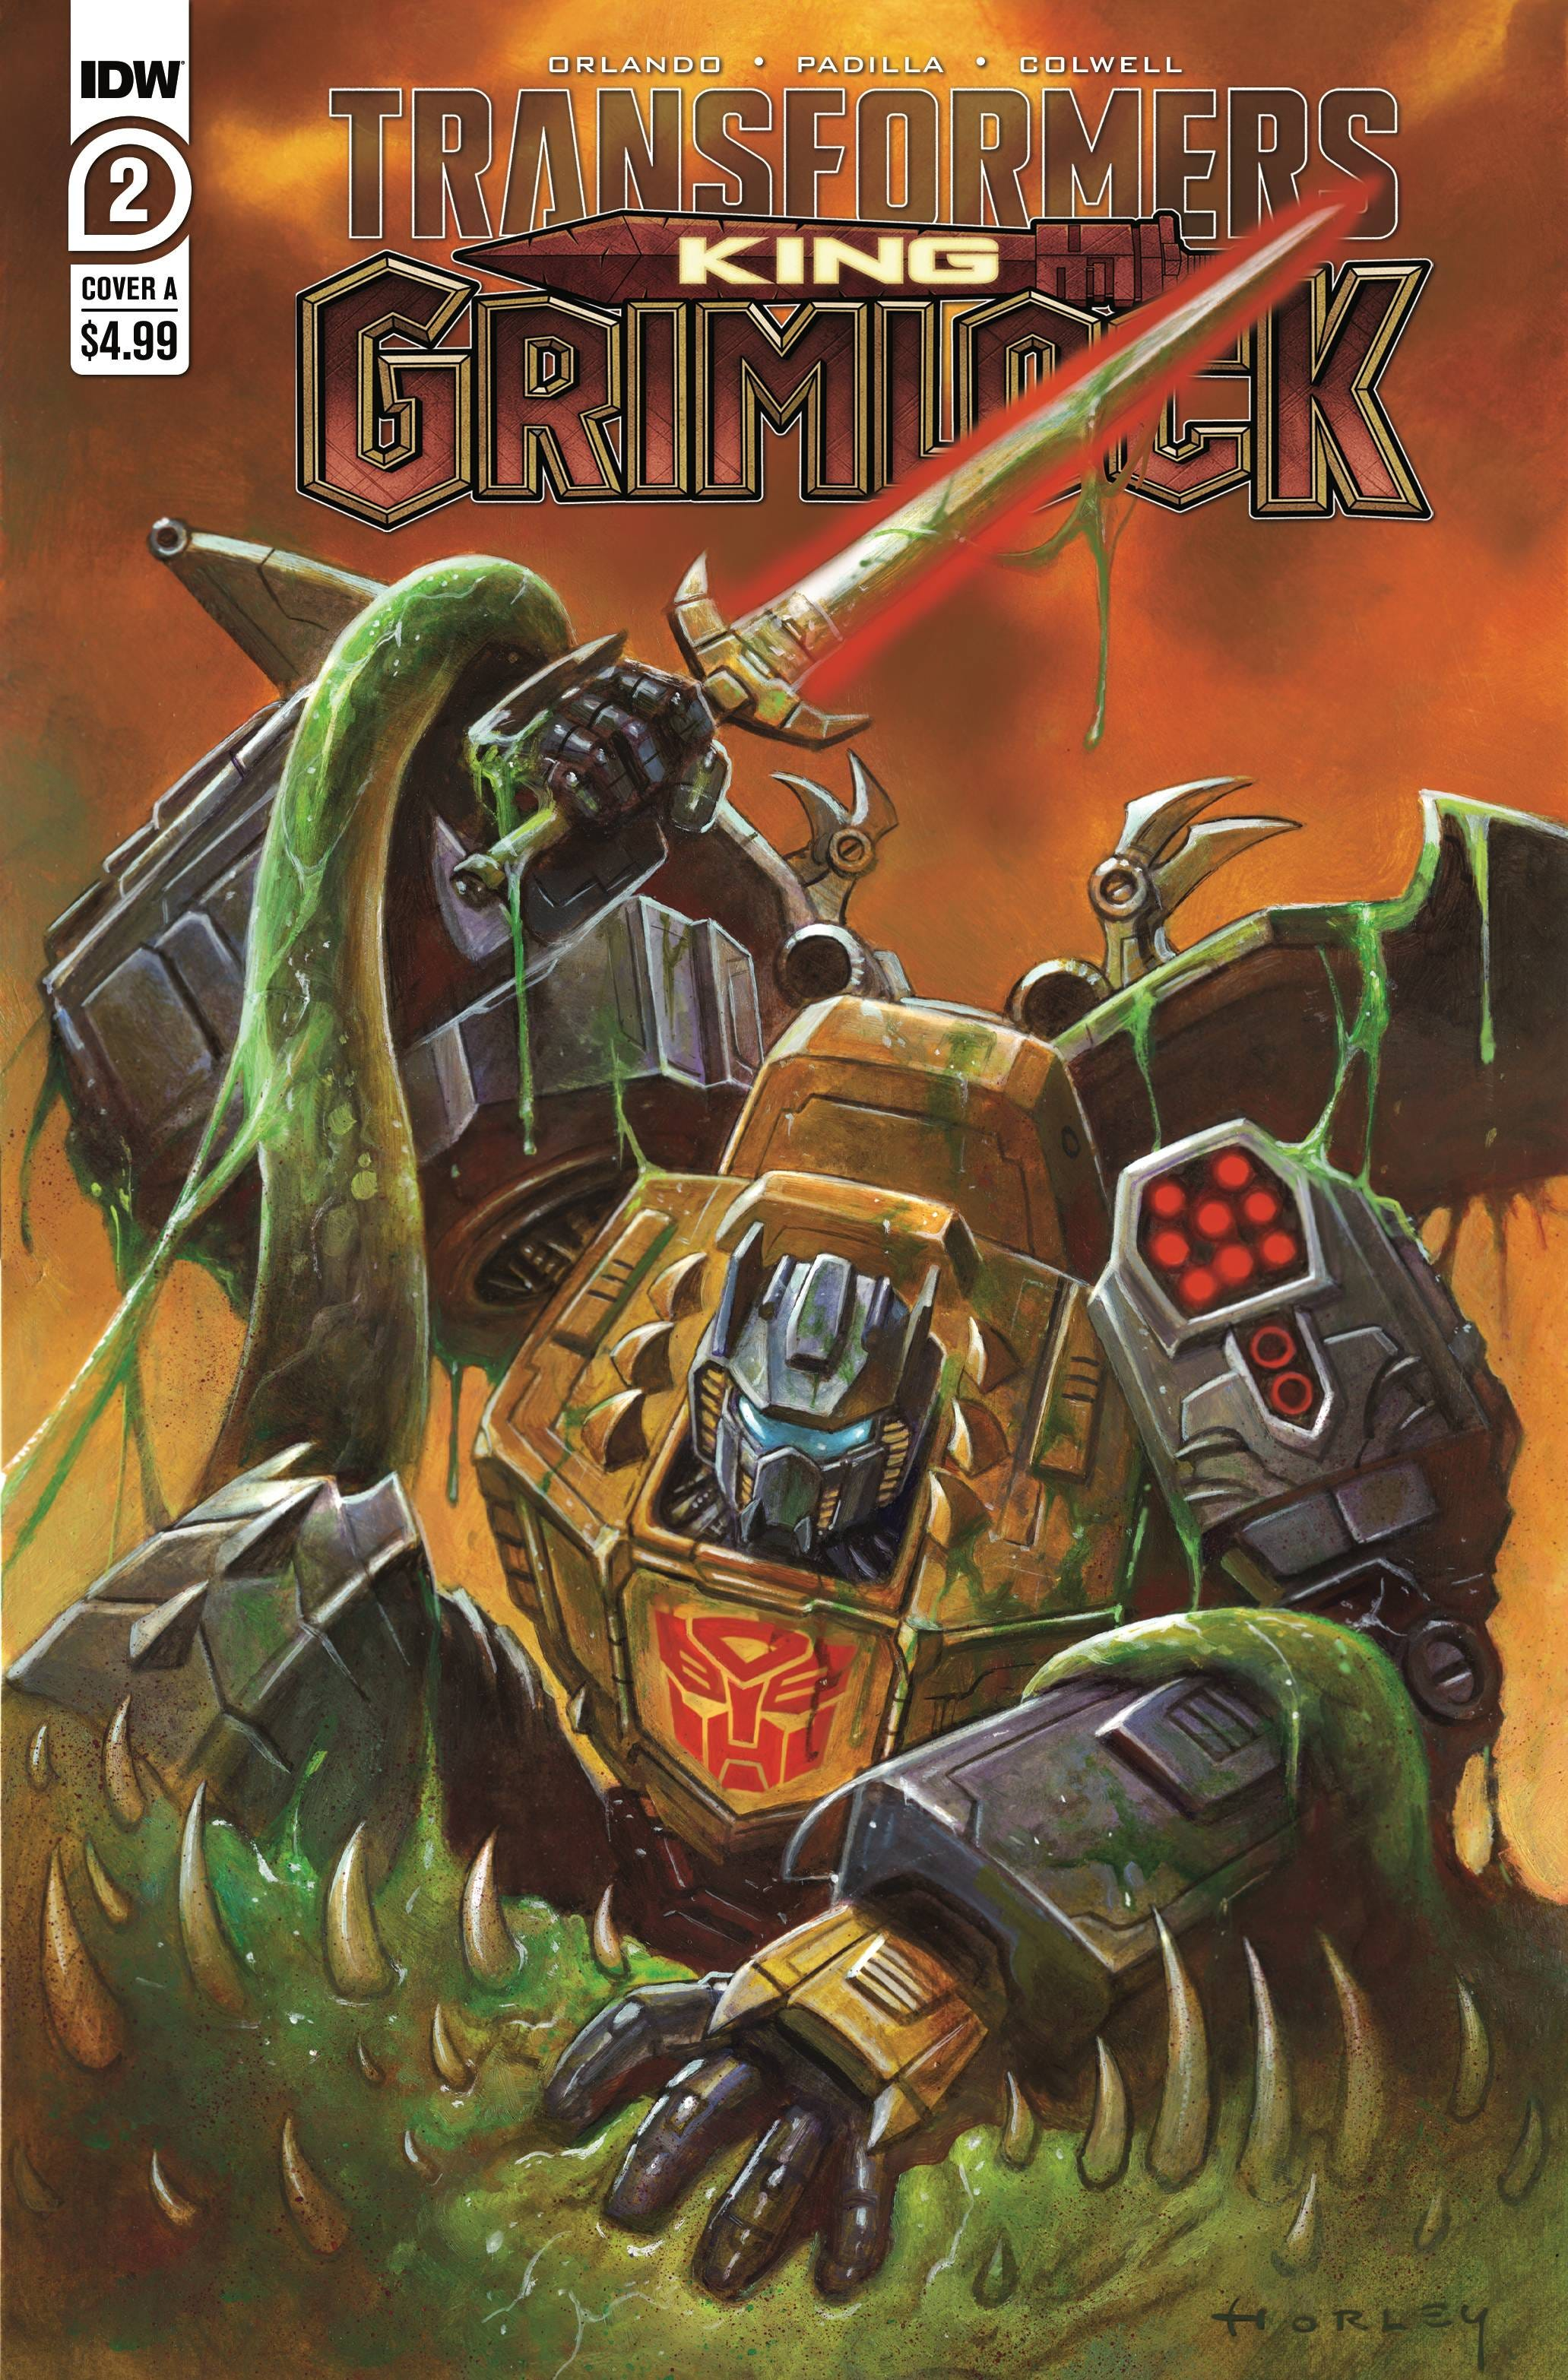 Transformers King Grimlock #2 (of 5) (Cover A - Horley)